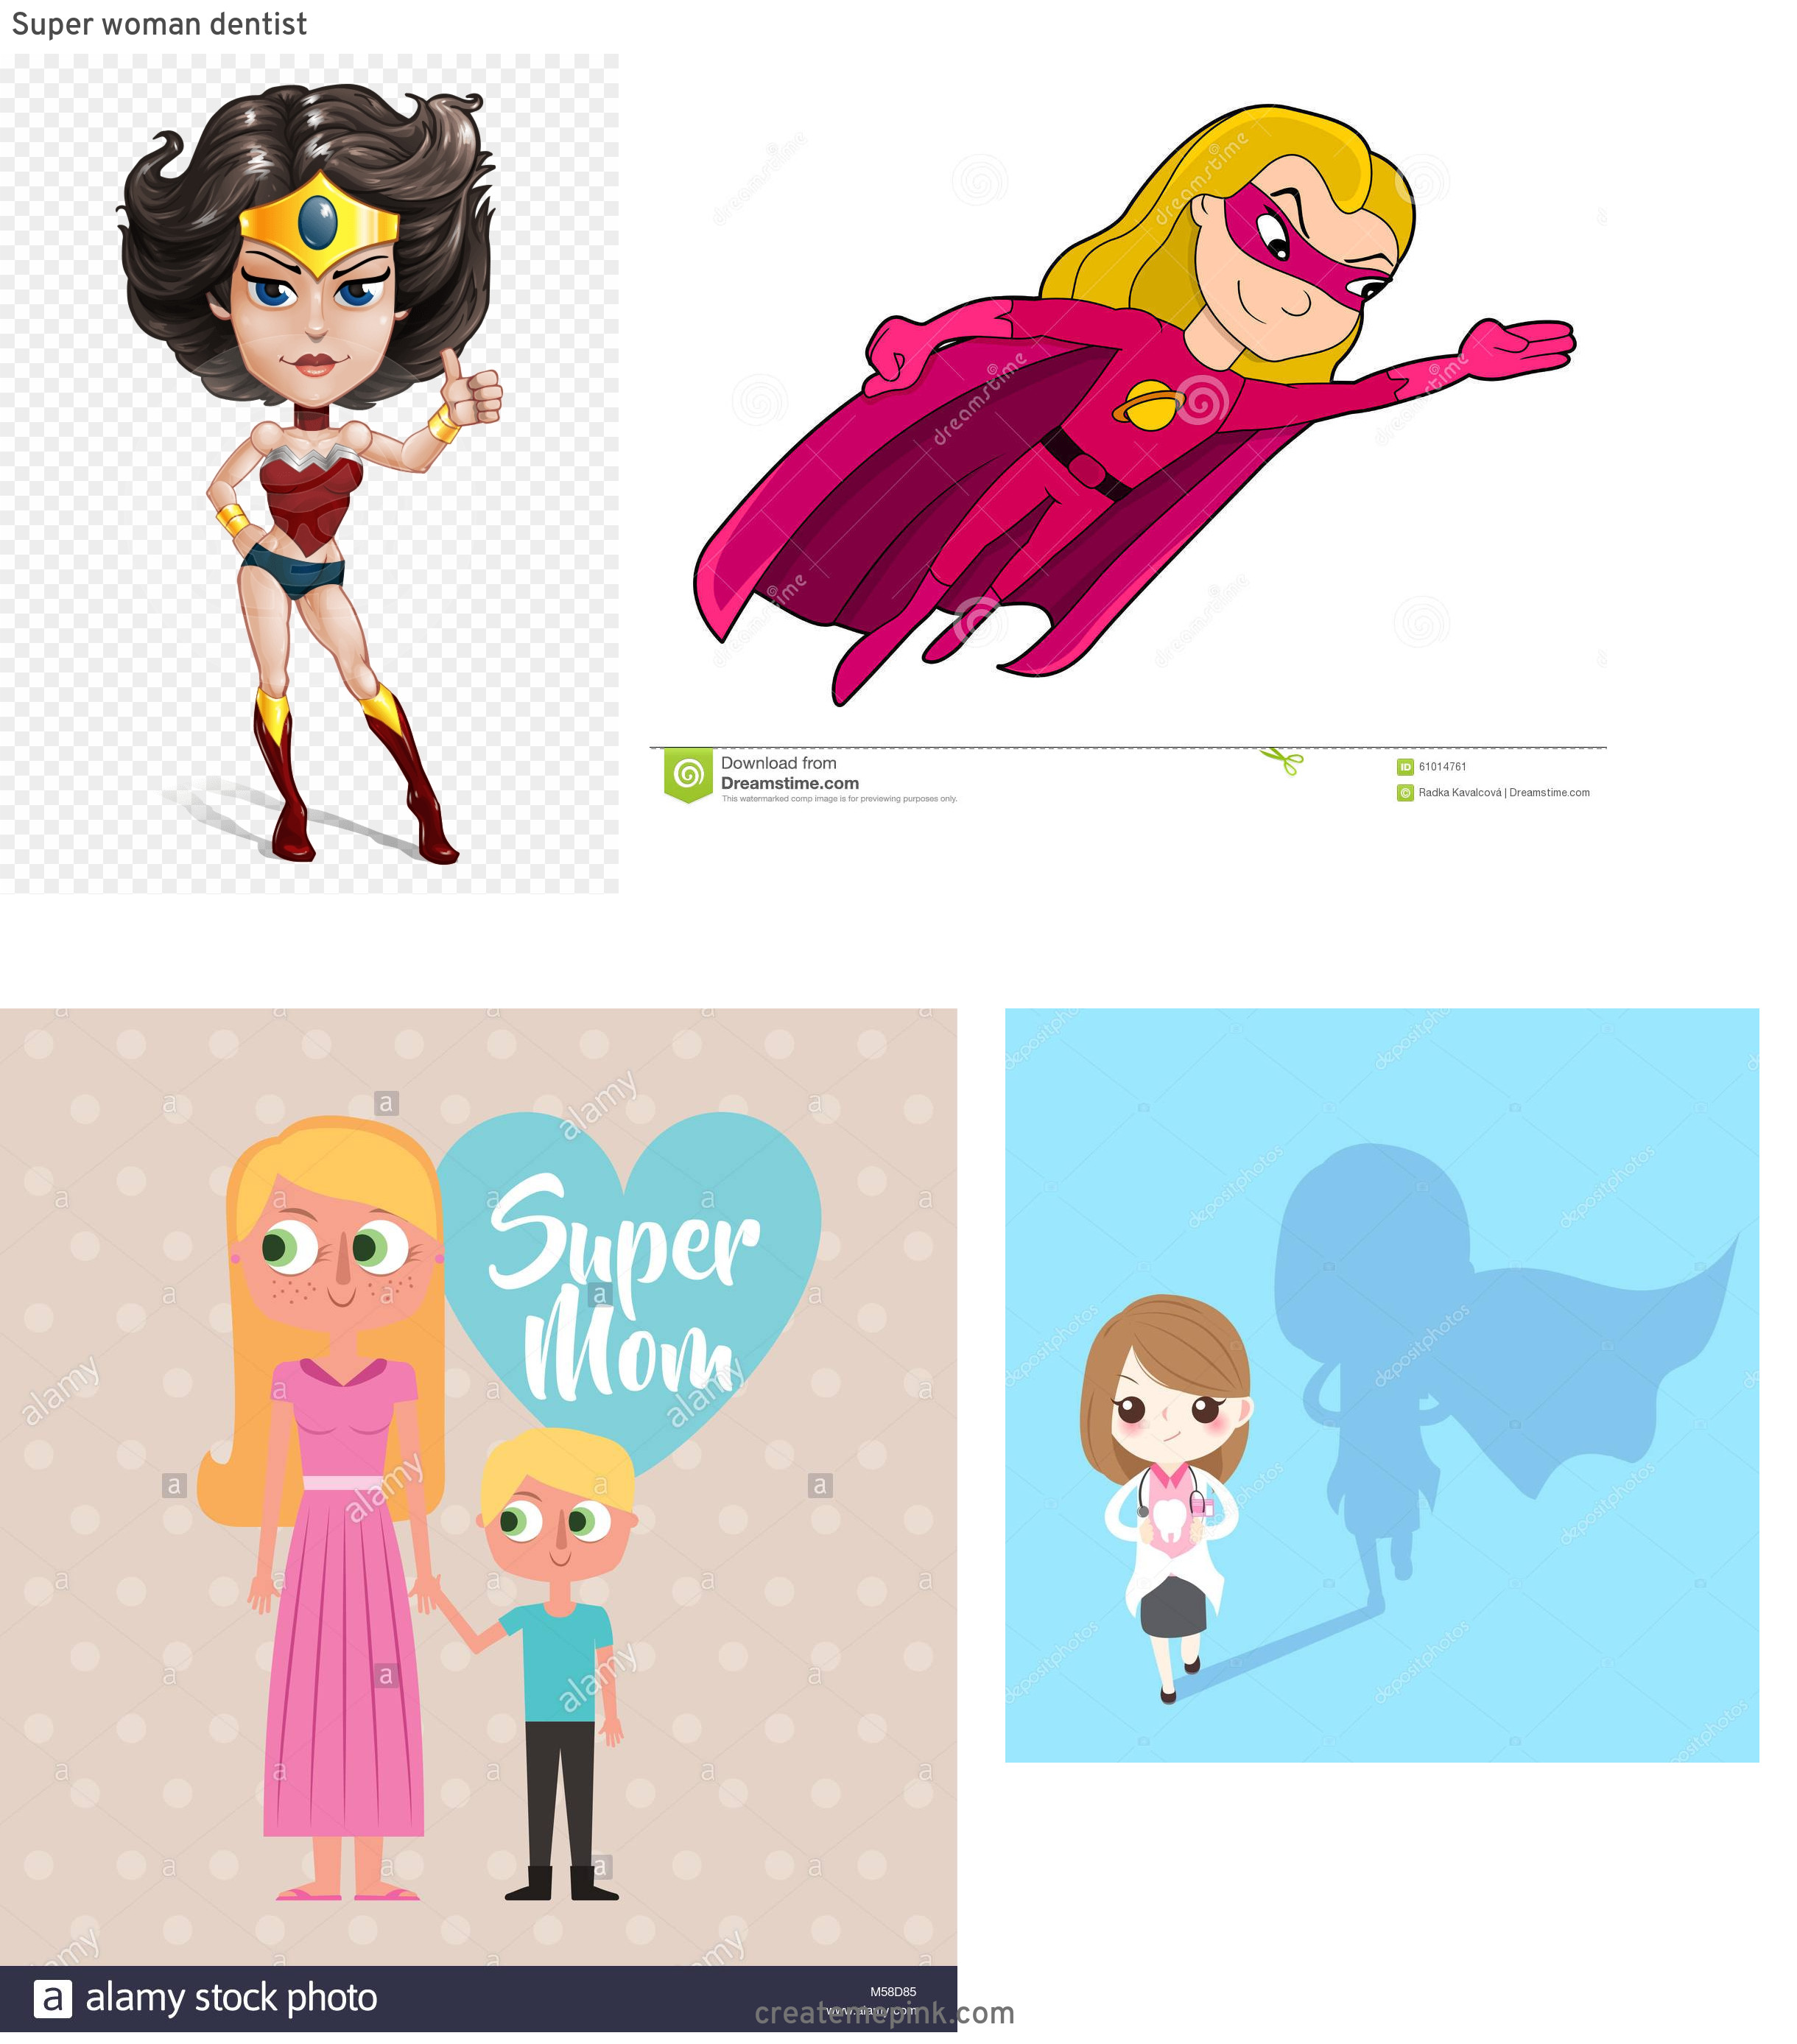 Super Cute Cartoon Girl Vector: Super Woman Dentist